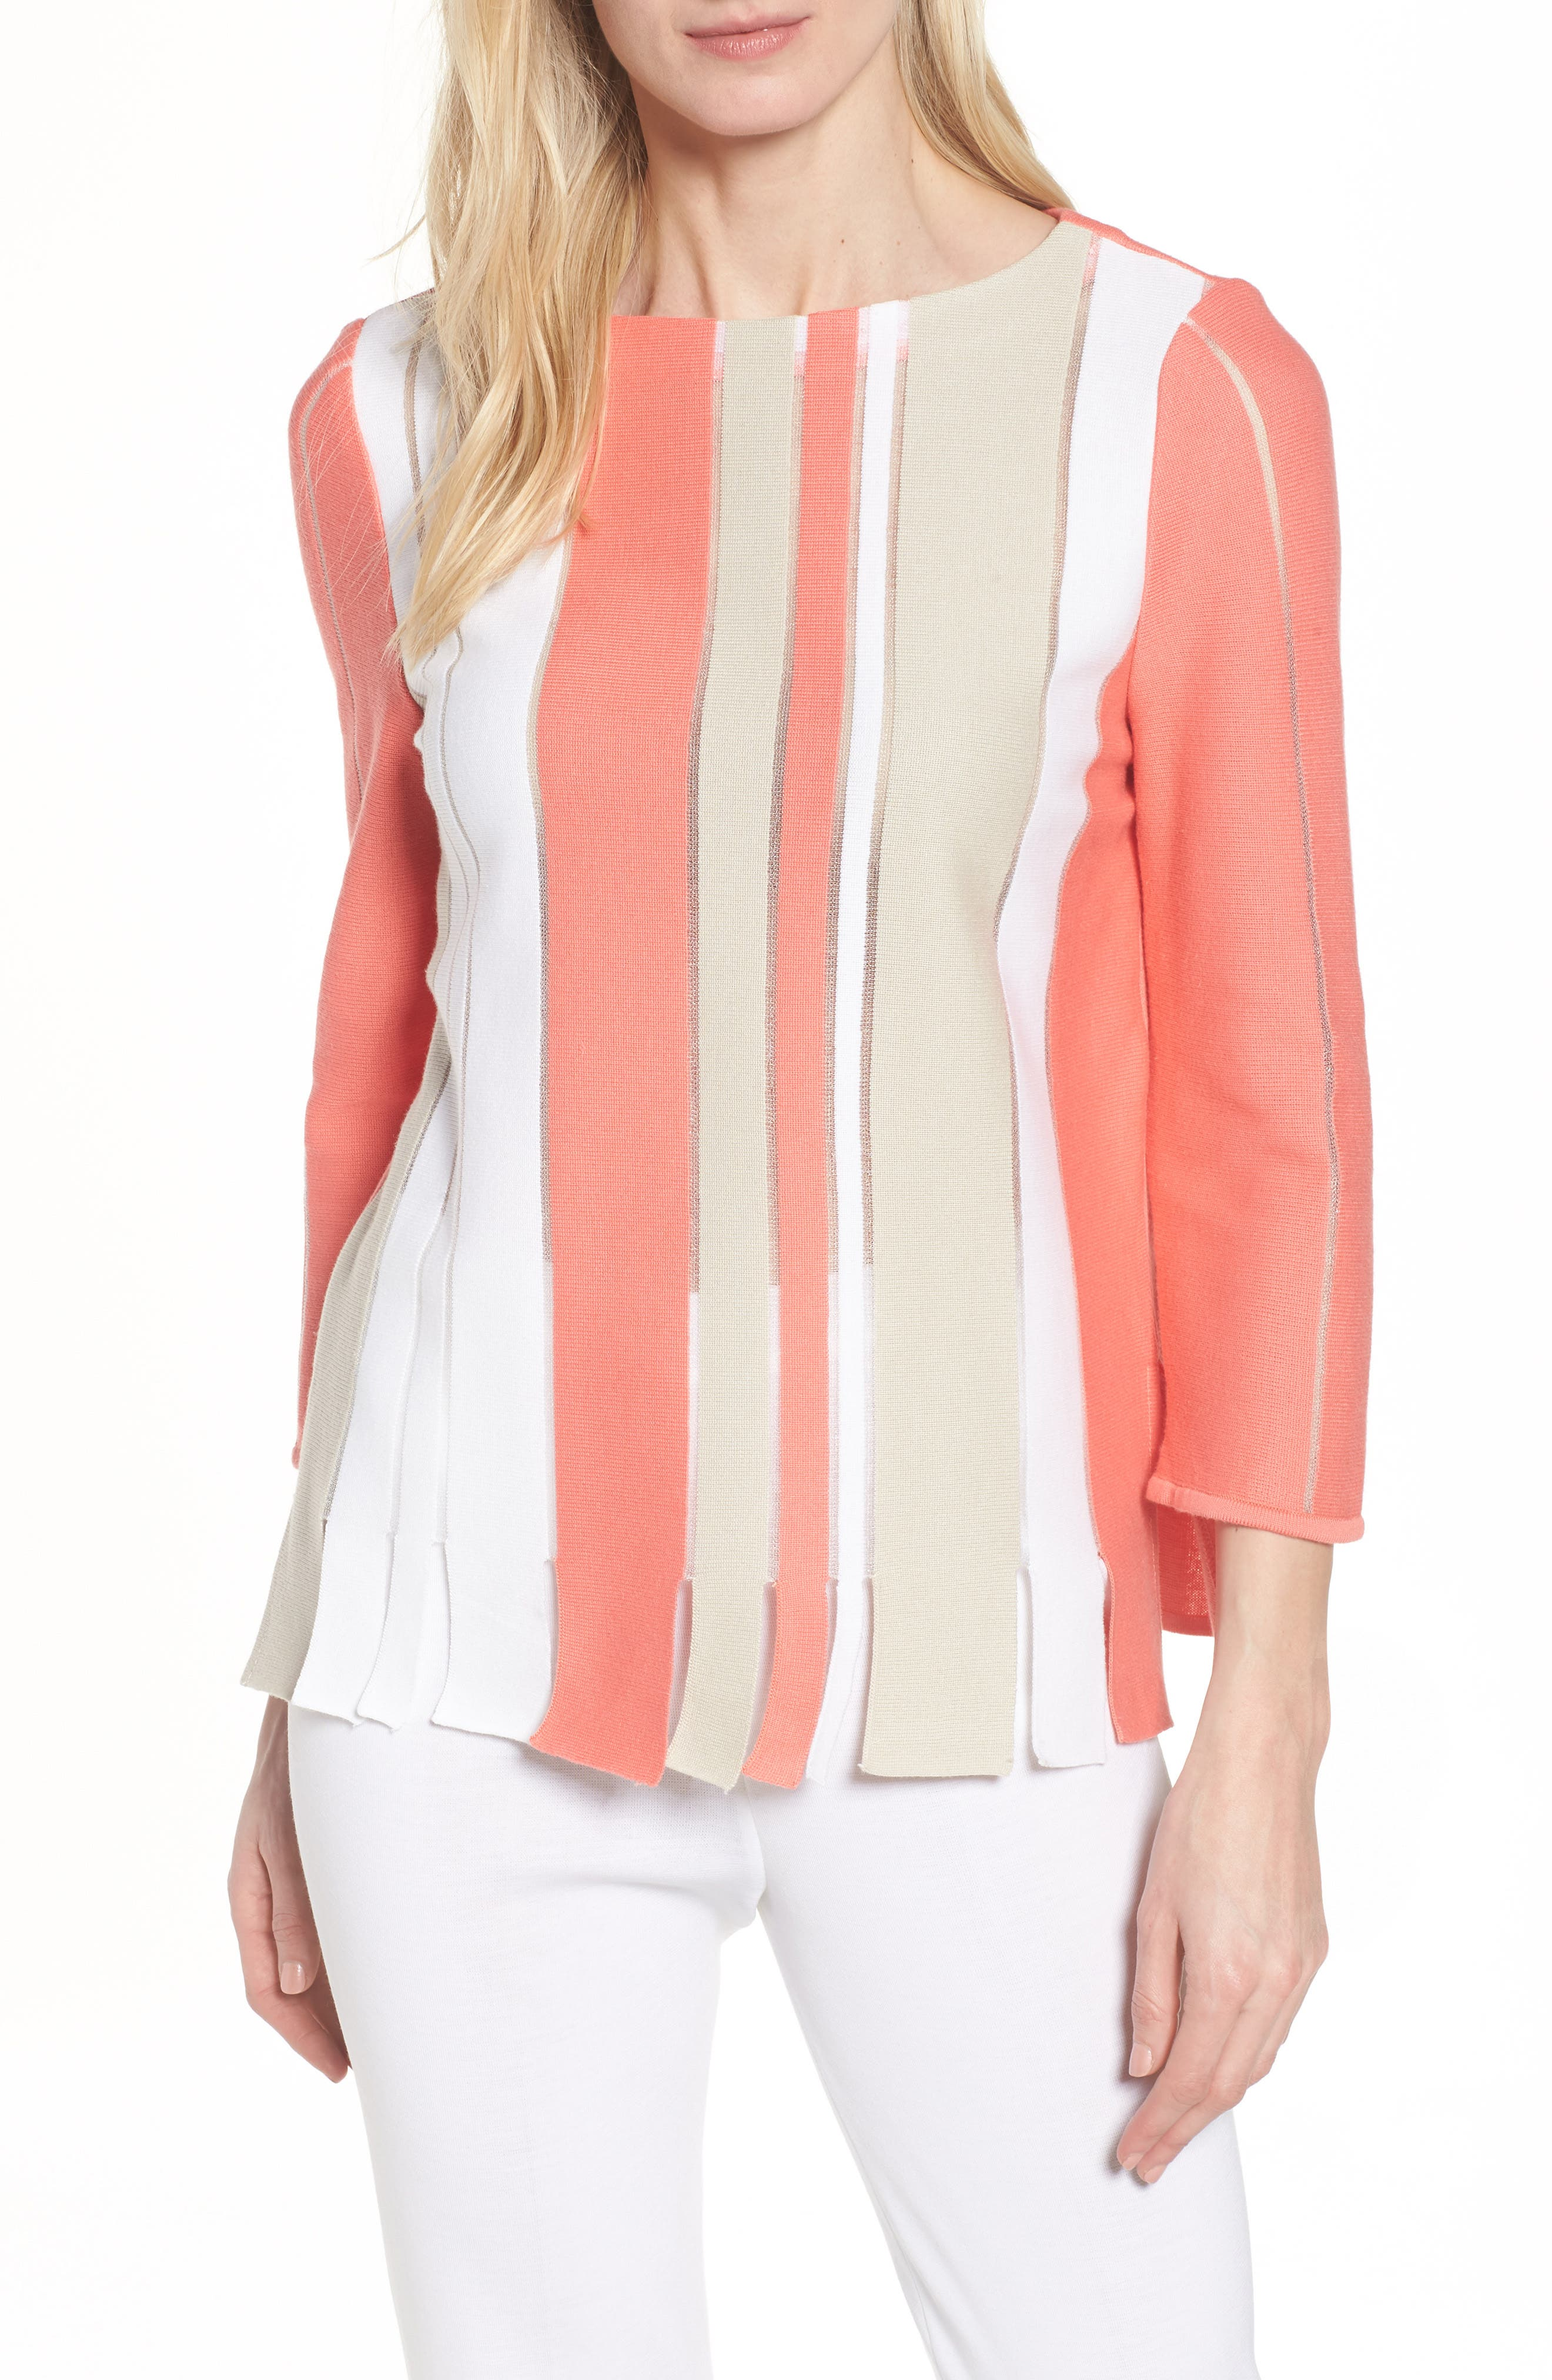 Stripe Cotton Blend Sweater,                         Main,                         color, Daylily/ Almond Beige/ White